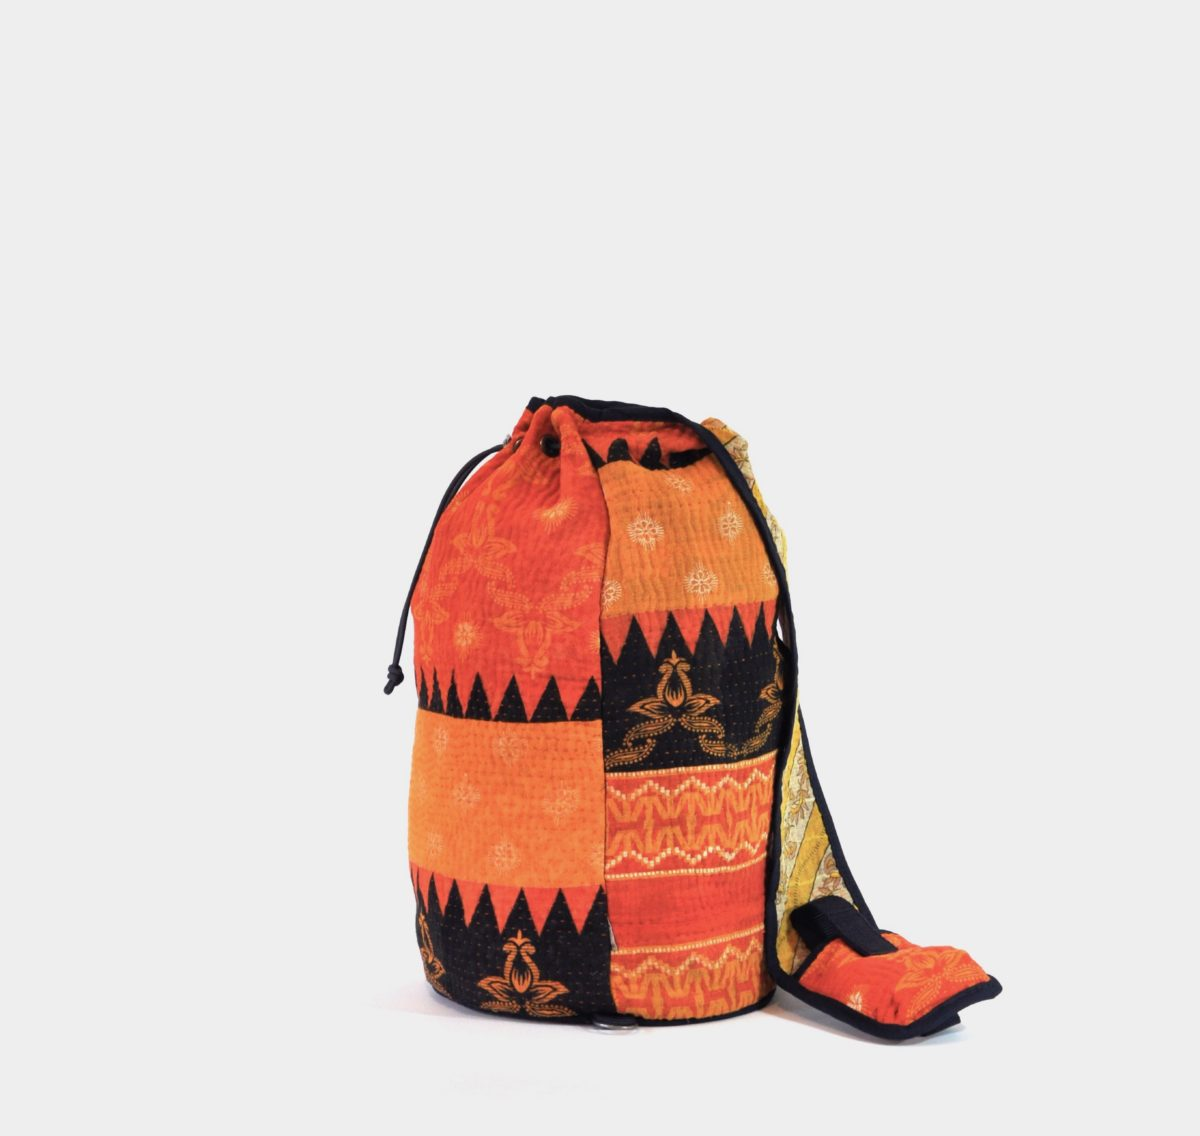 YESNESS Saffron, Orange & Black Colorblock 6